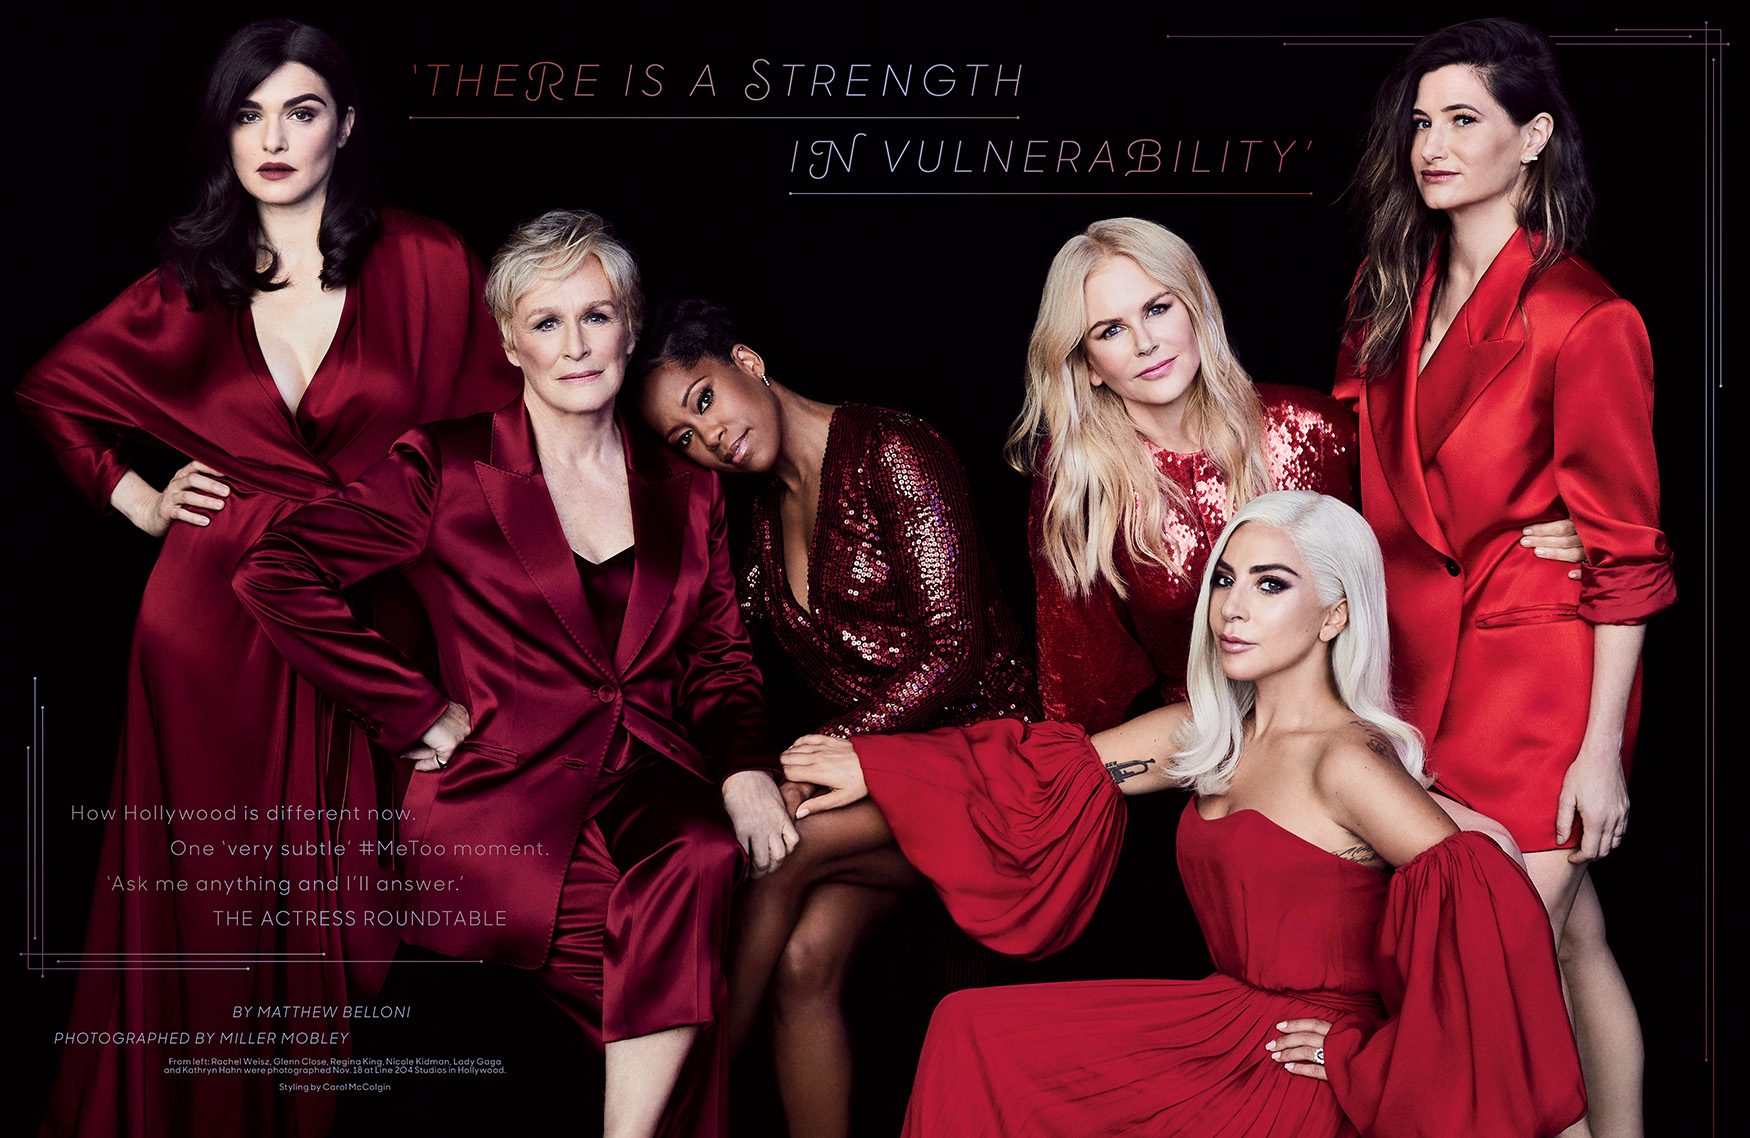 2018 Oscar Actress Roundtable / The Hollywood Reporter / 11.28.18 / kelsey stefanson / art direction + graphic design / yeskelsey.com